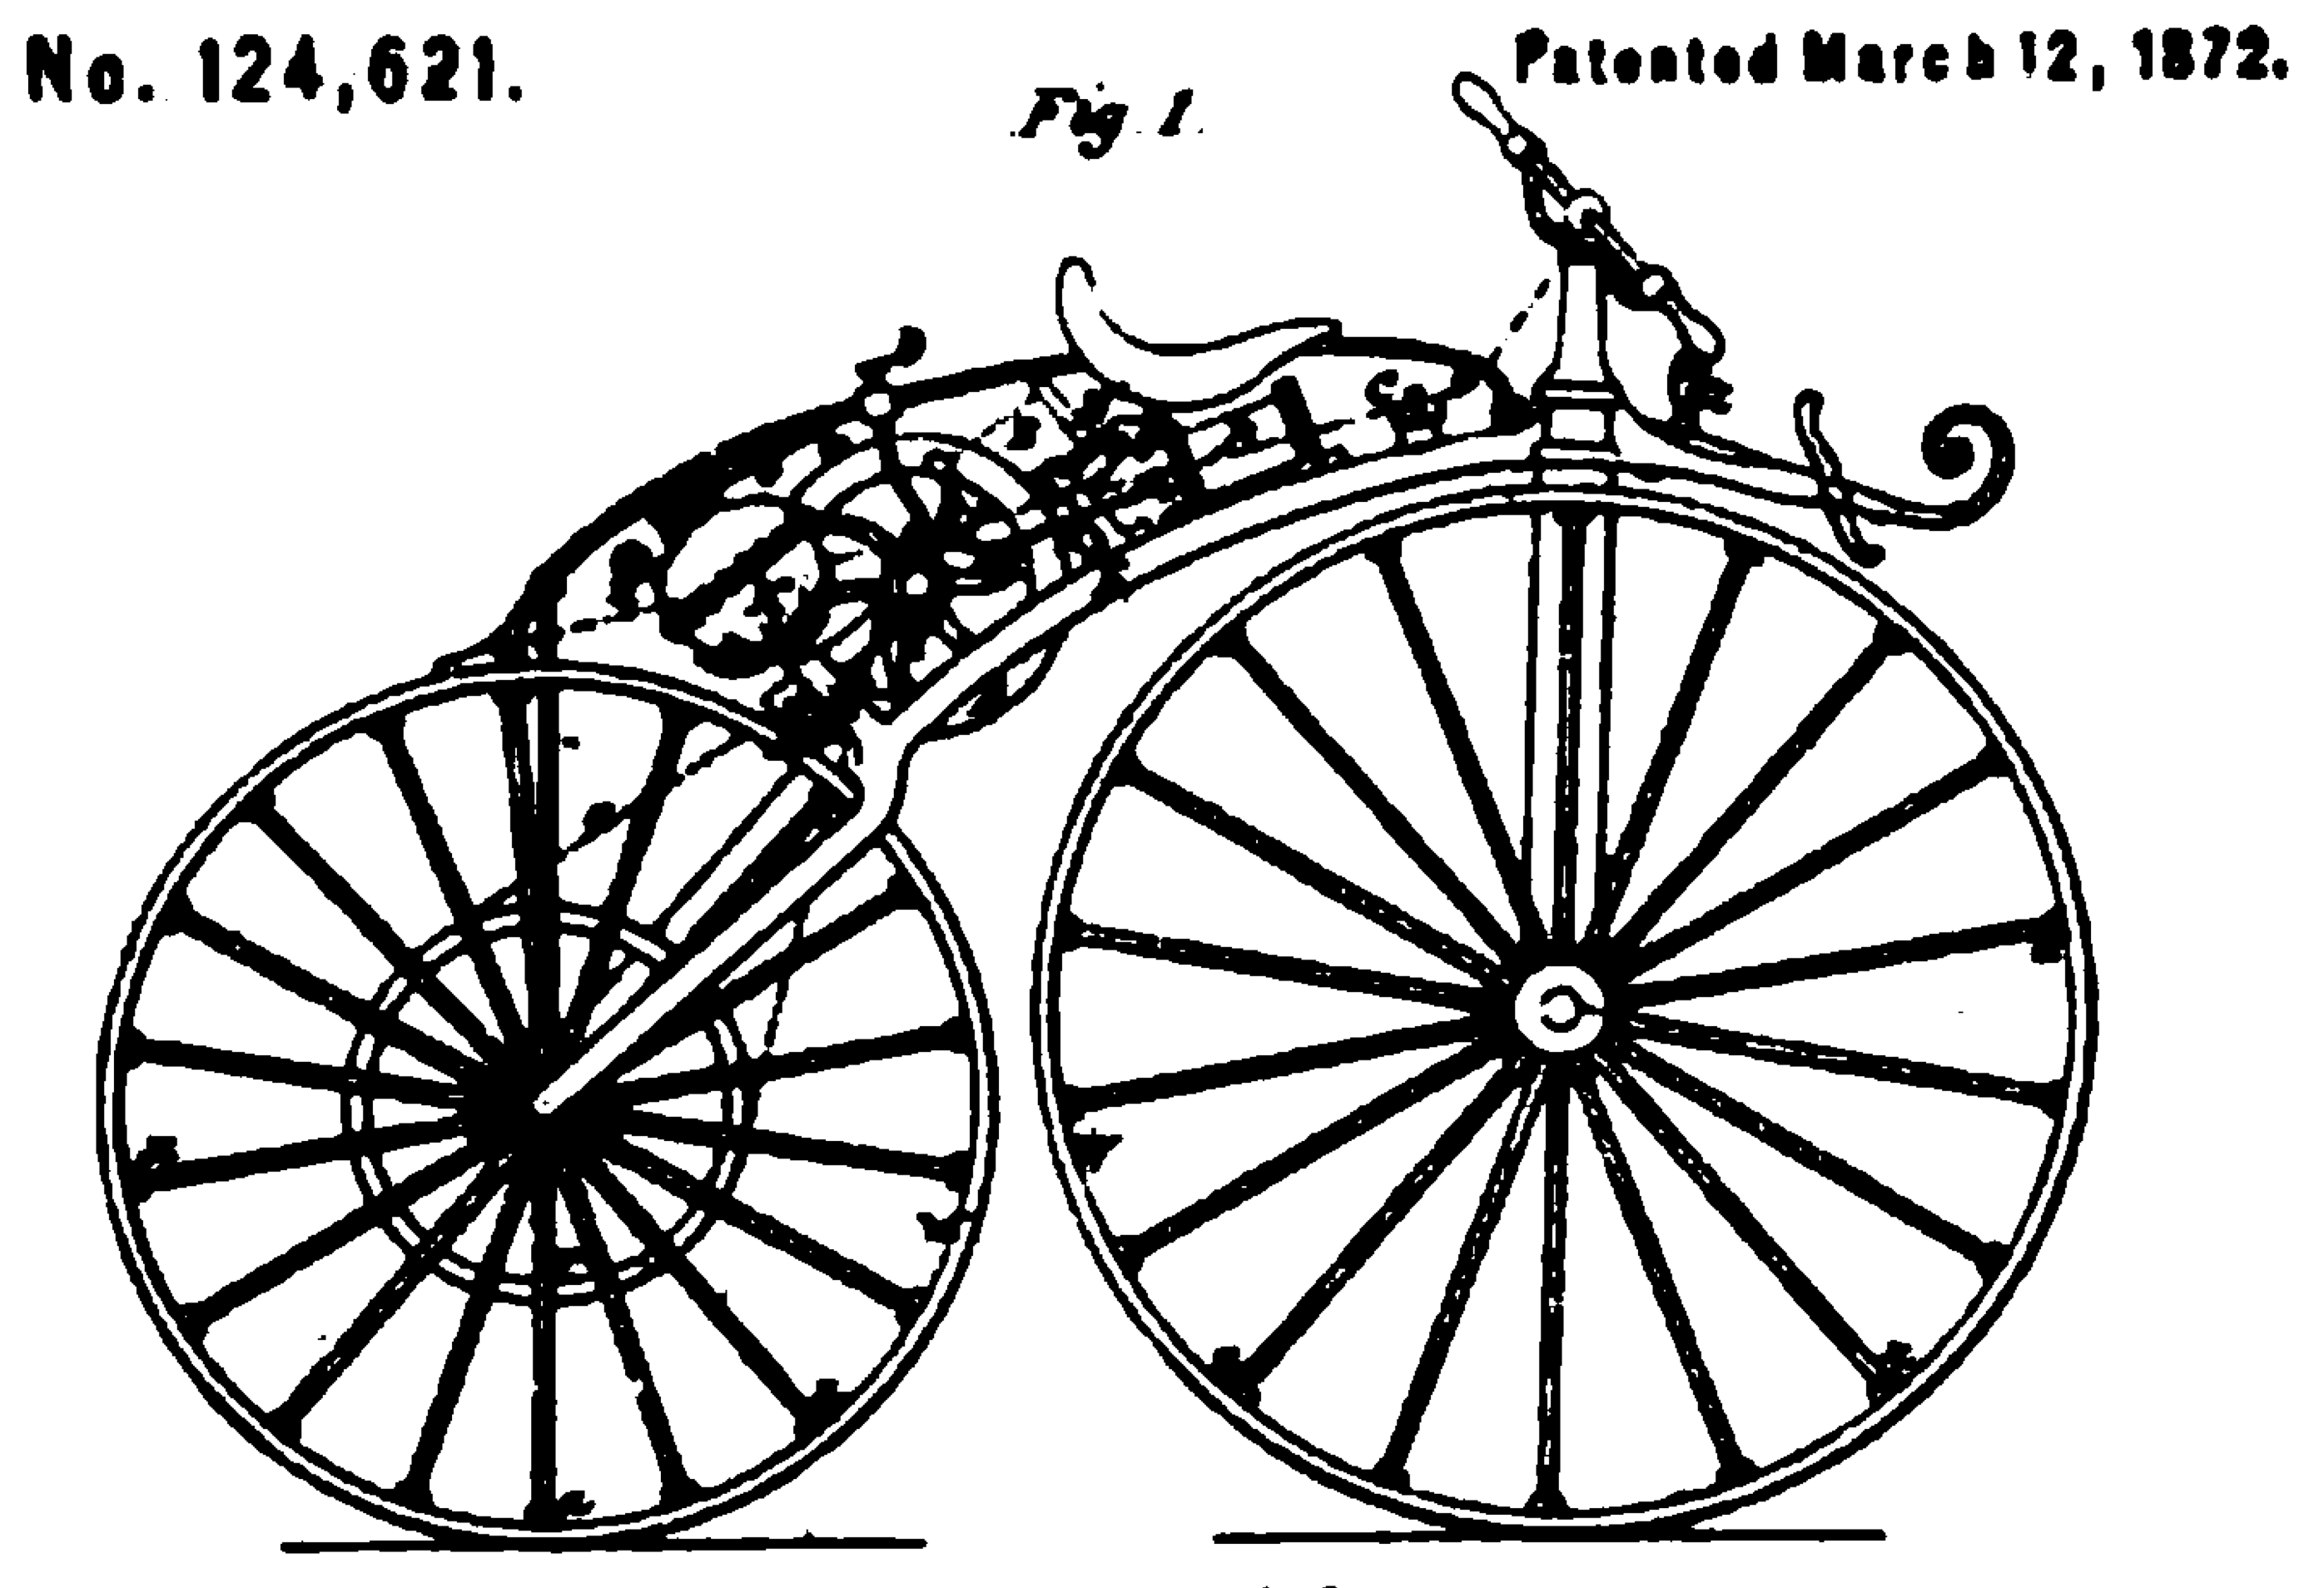 Mechanical Power And Mechanization In further File Page 37 Digest of United States automobile patents from 1789 to July 1  1899 closeup additionally Early  bustion Engine Diagram together with Caterpillar Logo History in addition Modern Steam Powered Cars. on early automobile engines